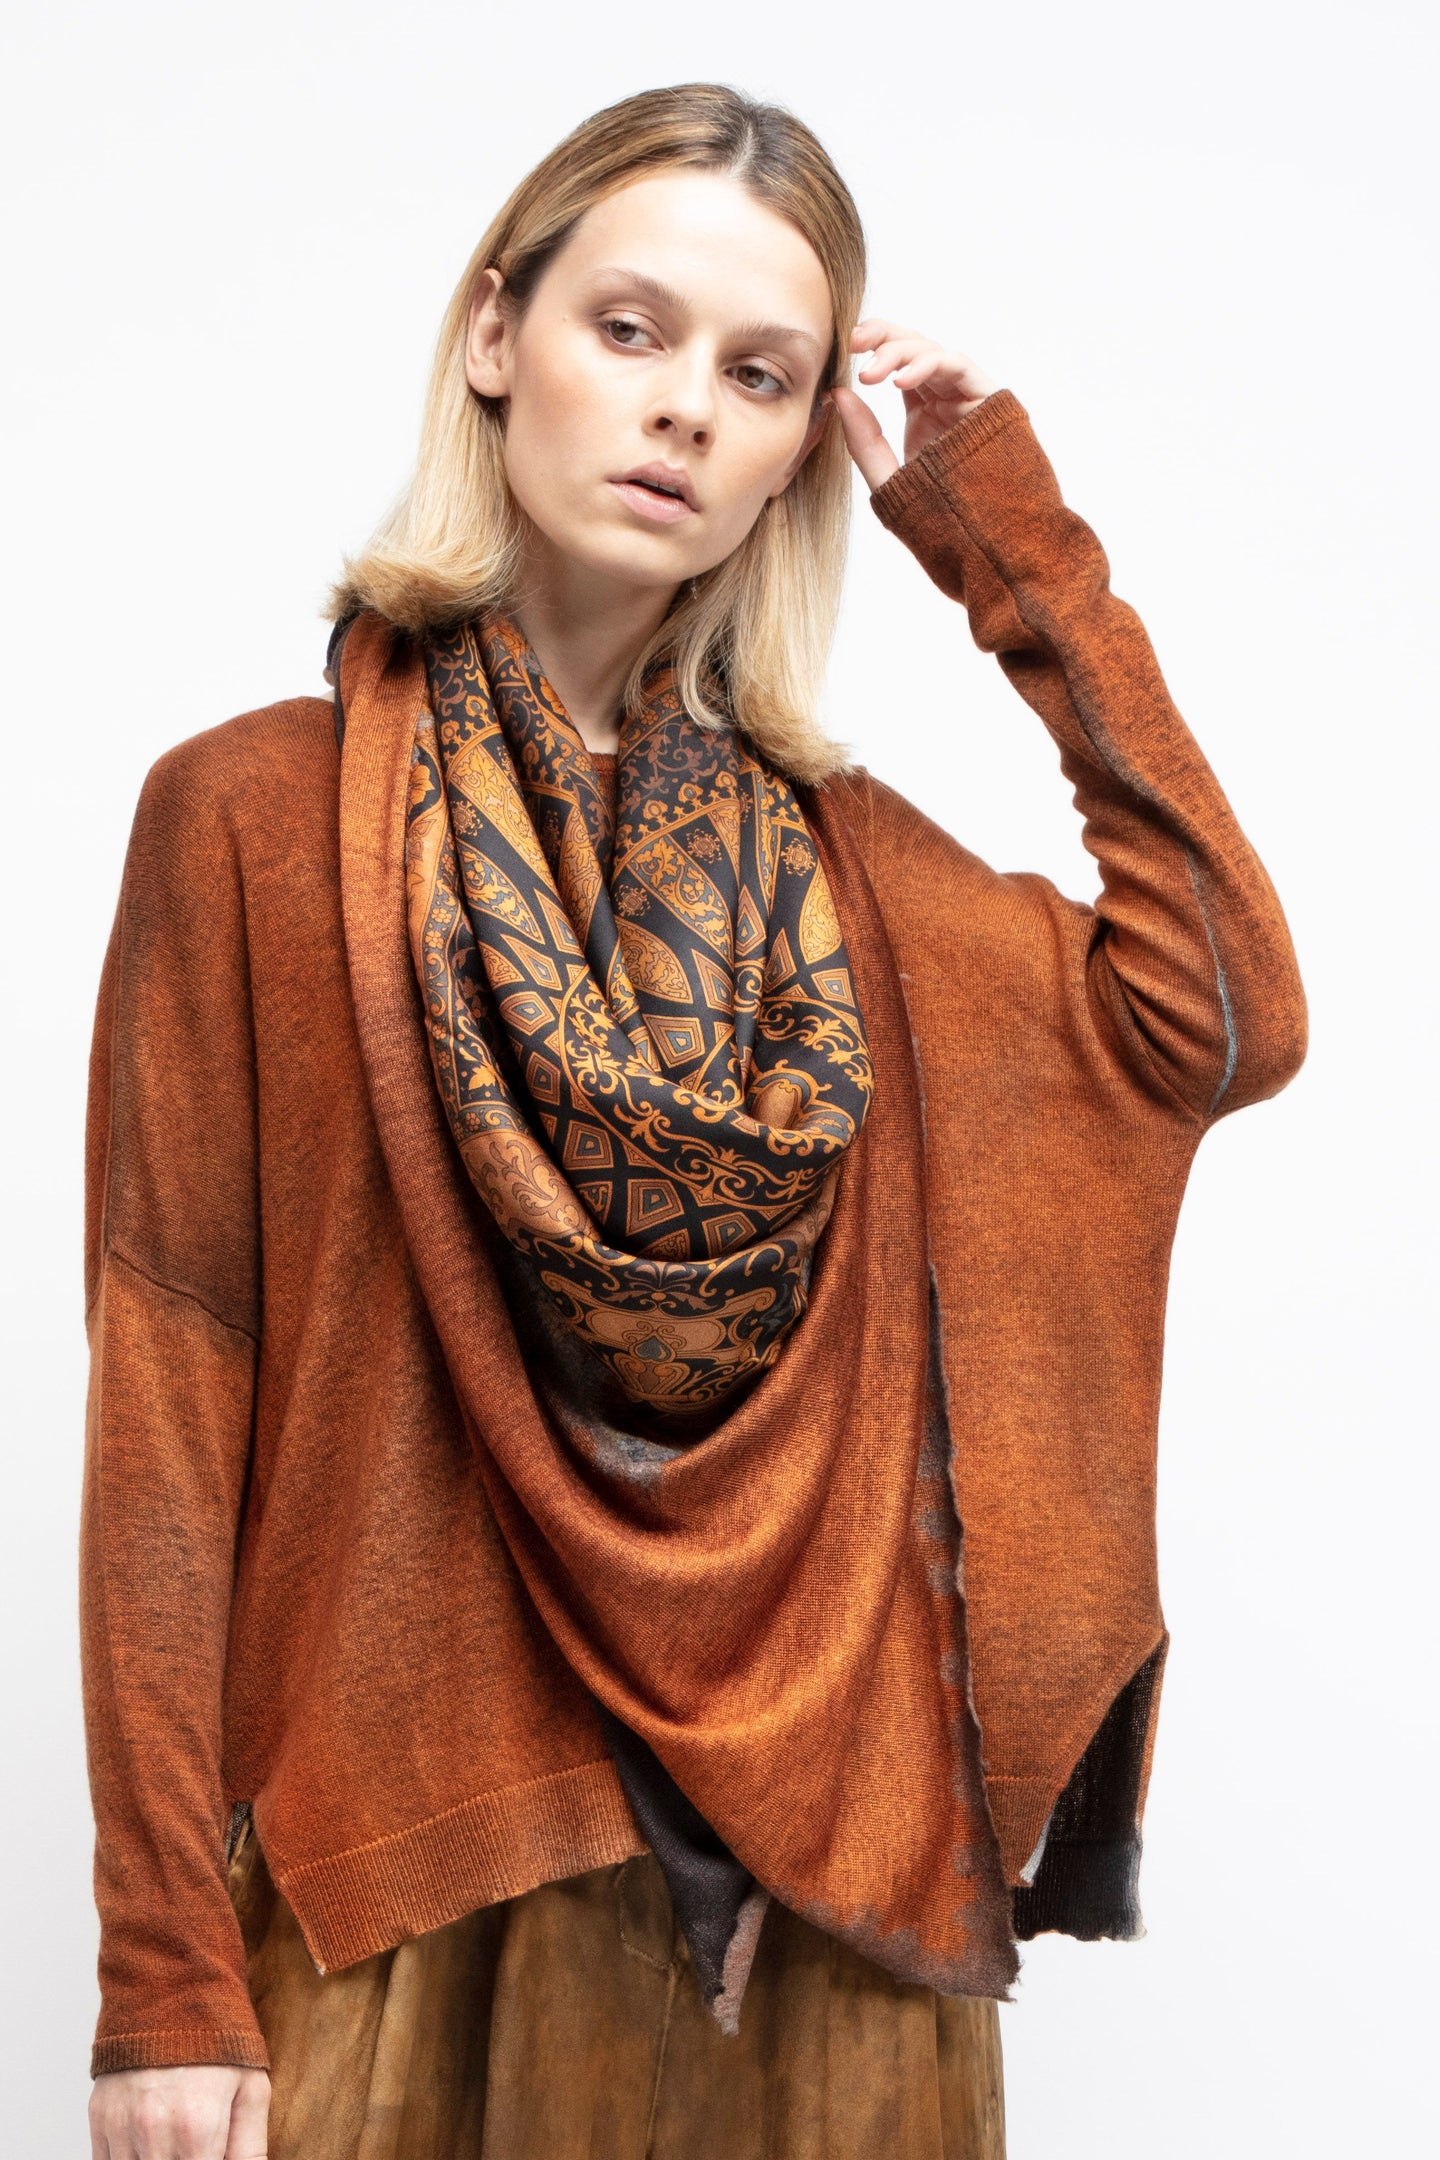 One of a kind foulard scarf   spring / summer   N/Marmalade   Pre order now! Receive your order by May 15th, 2021 the latest.